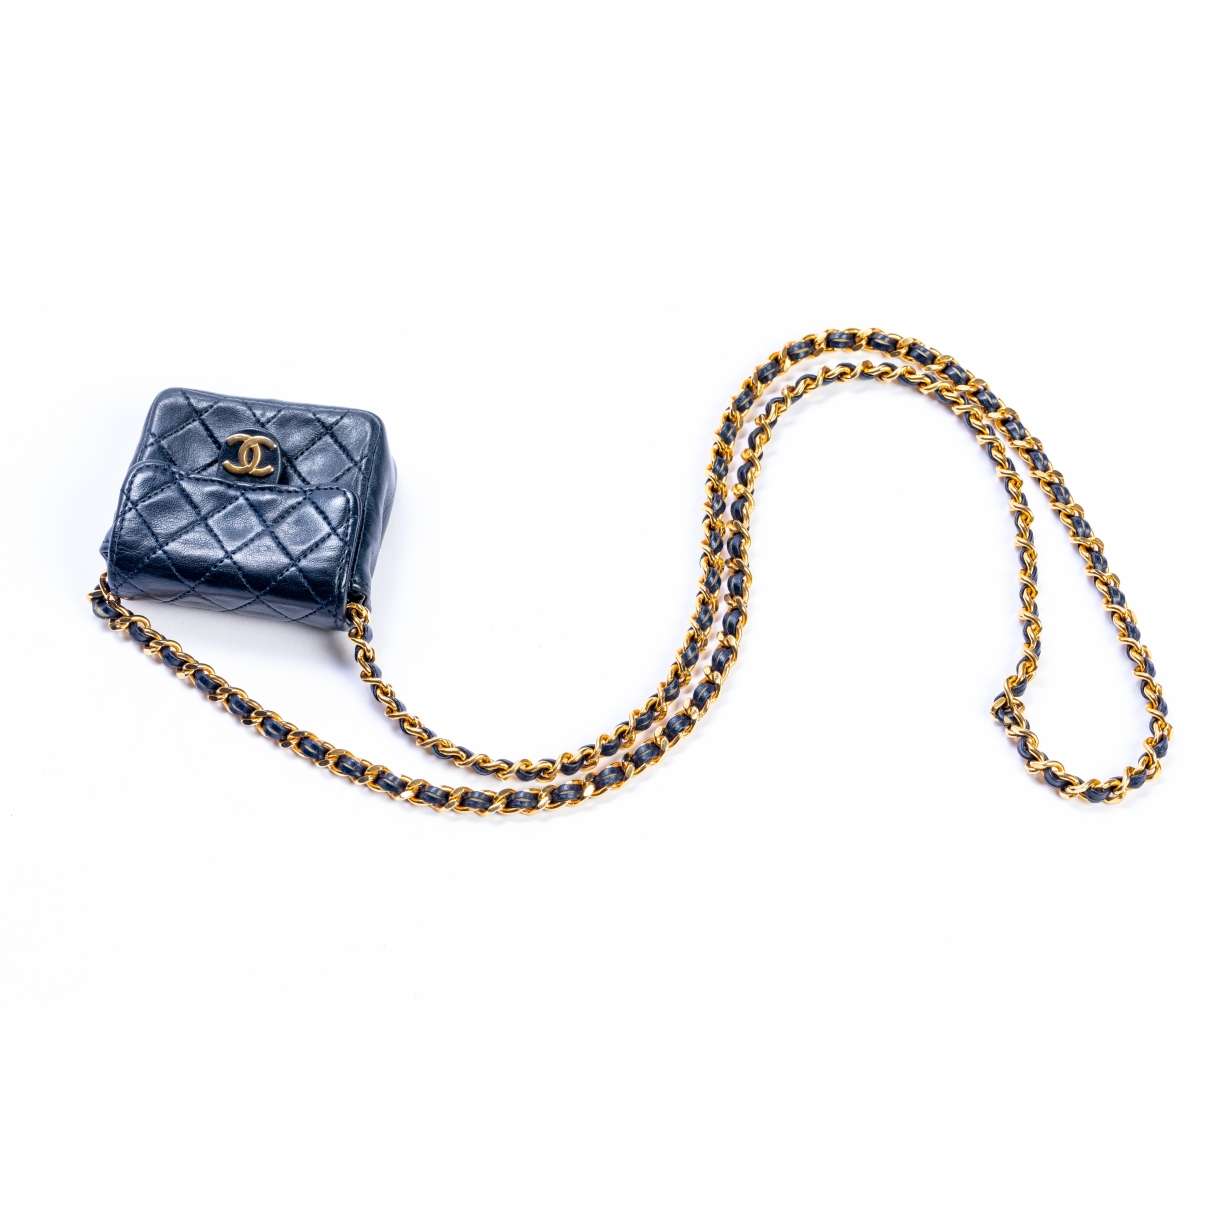 Chanel Timeless/Classique Navy Leather handbag for Women \N